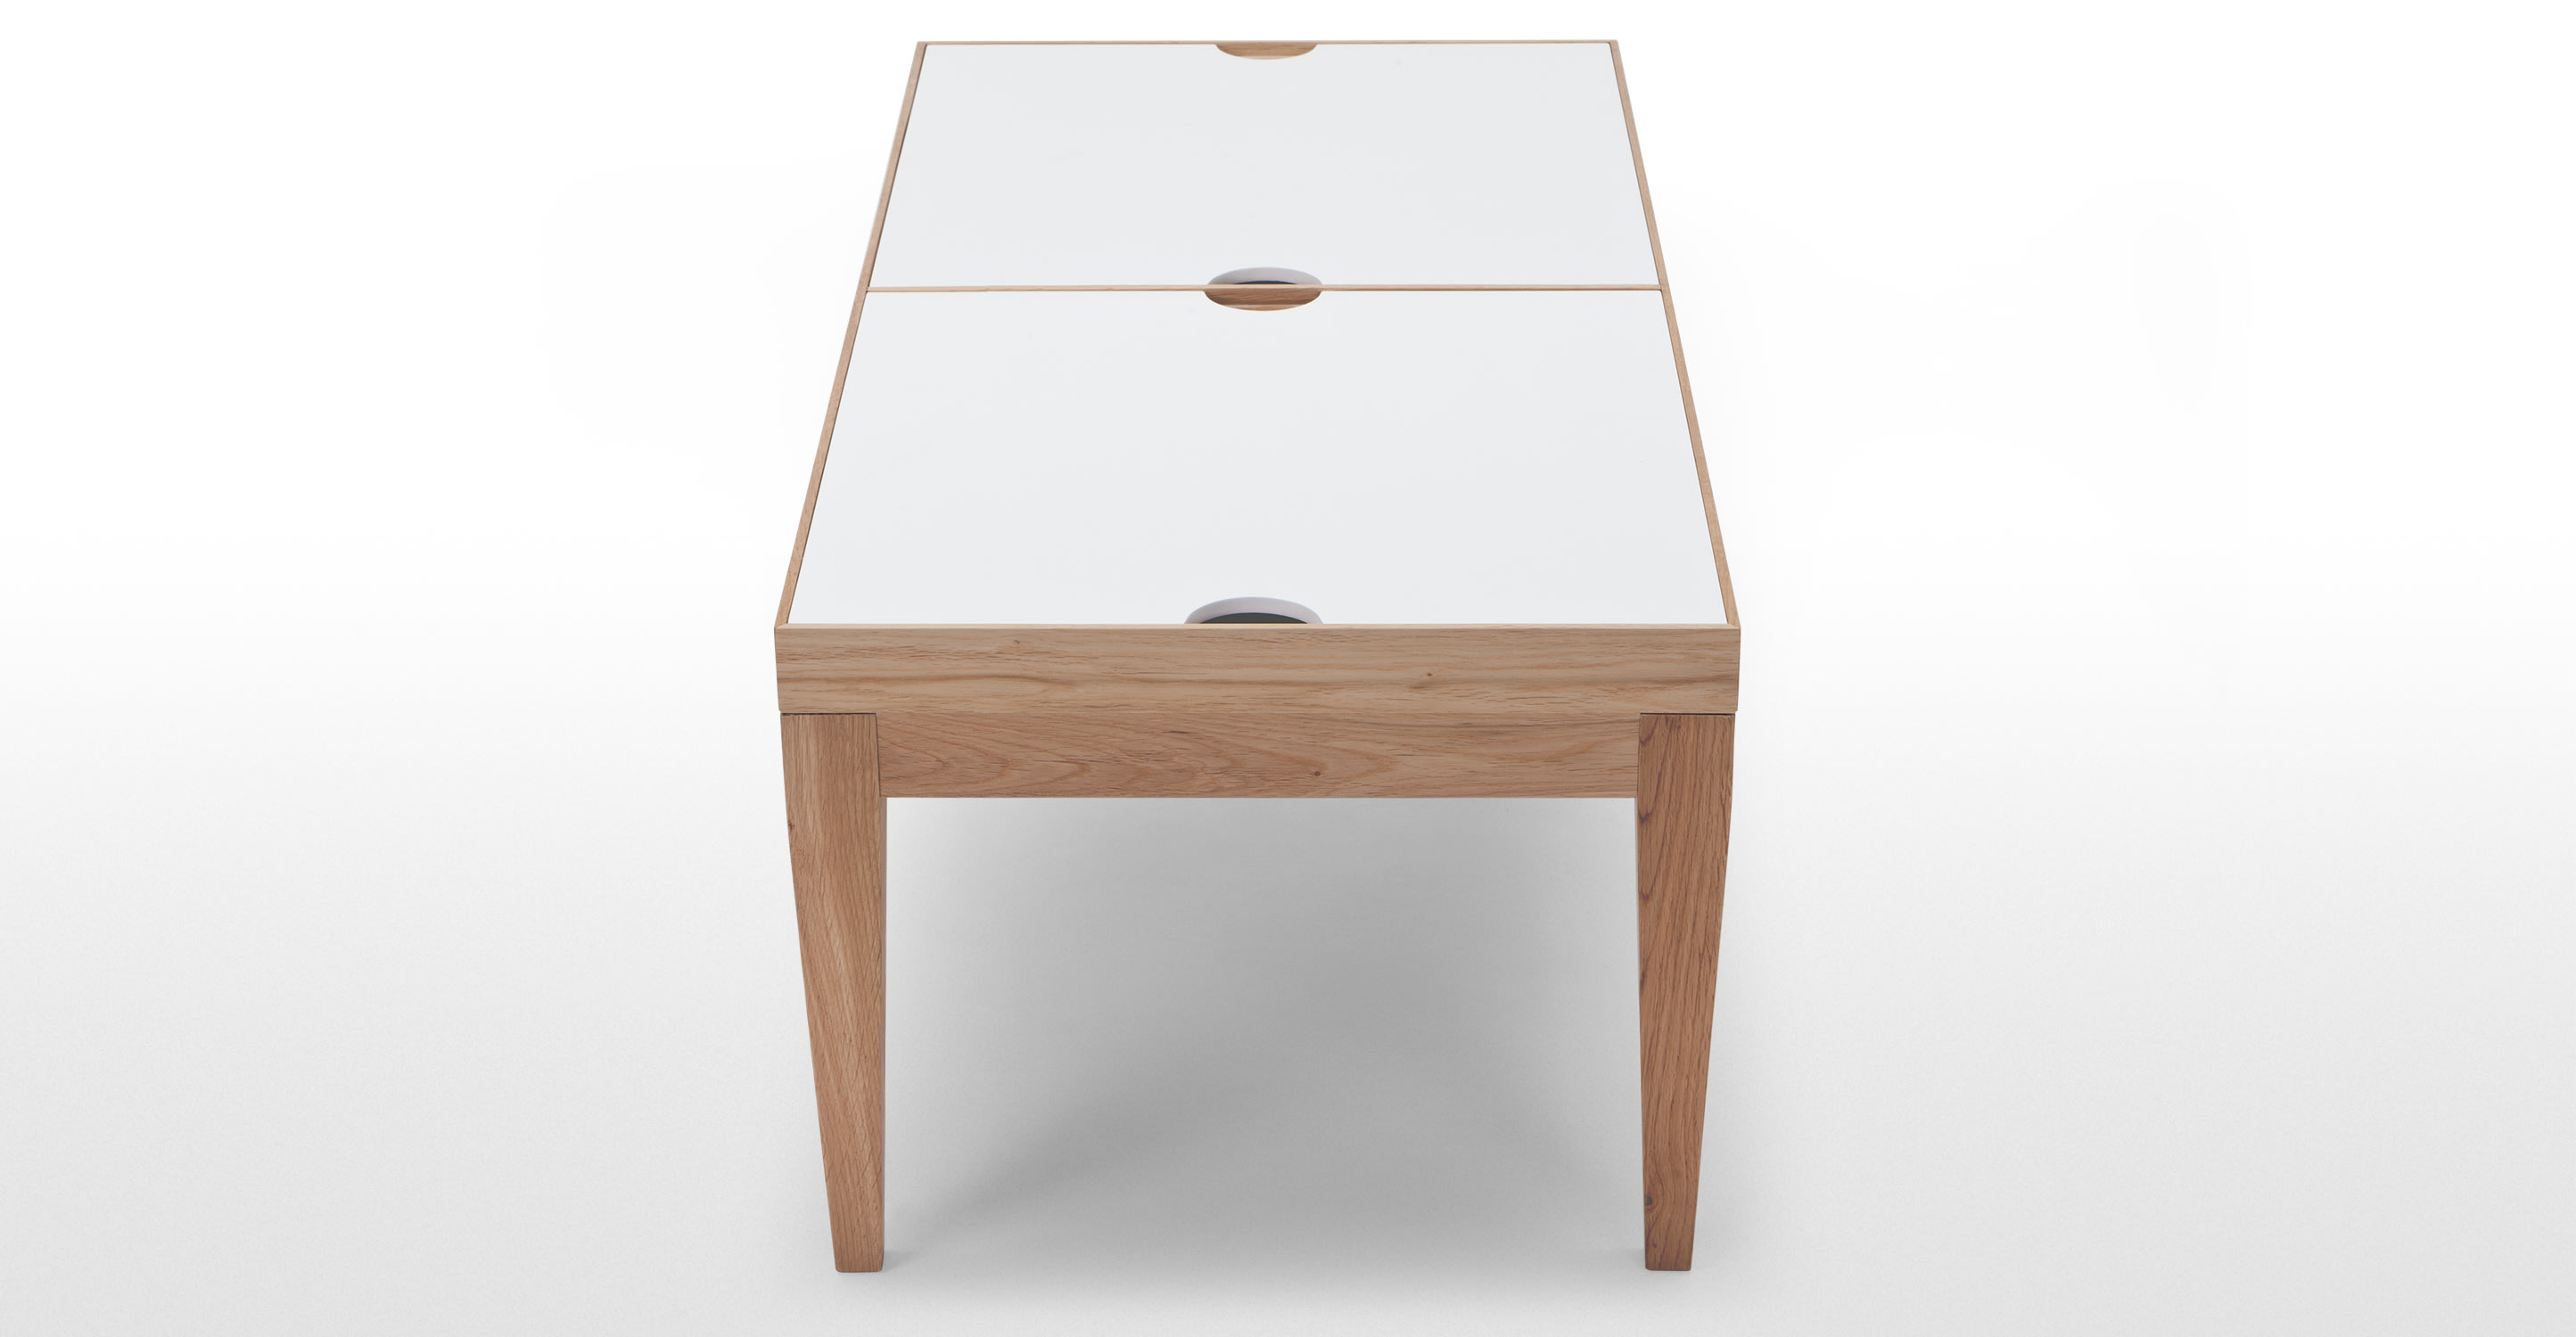 Dorig Oak Coffee Table With Storage In White